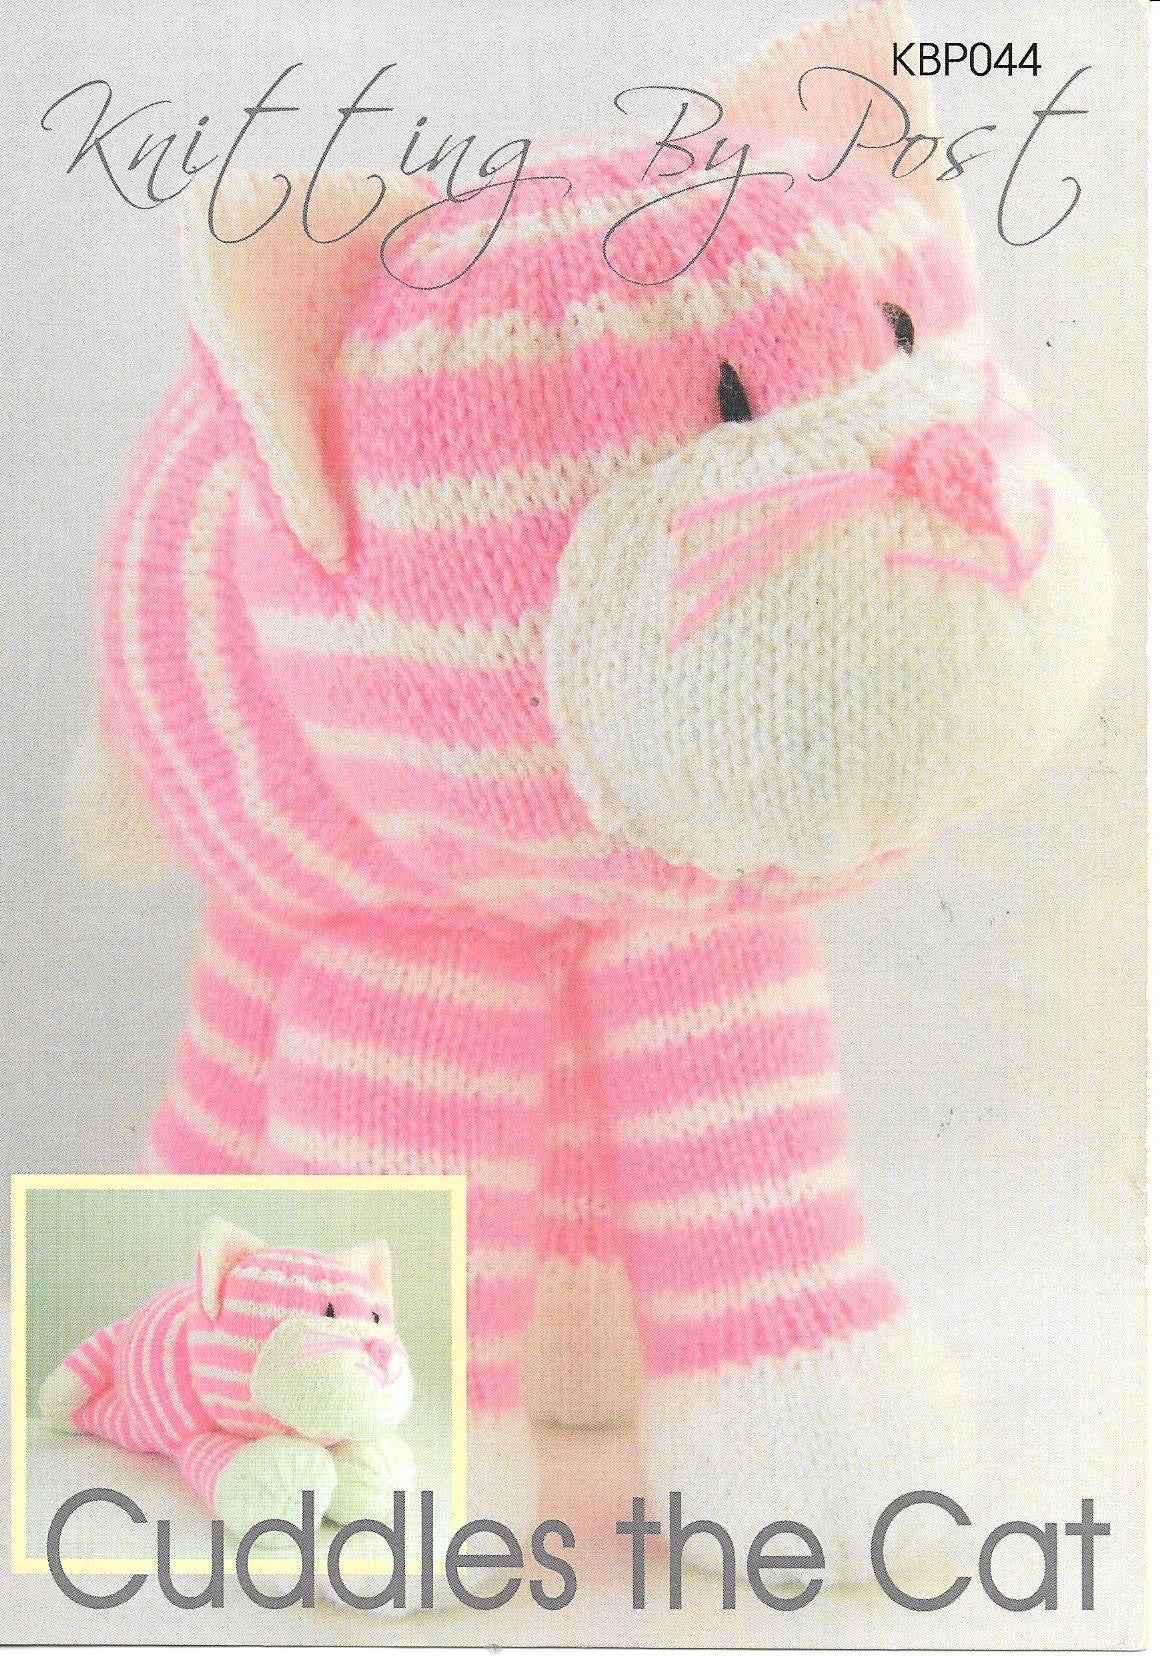 044 KBP044 Cuddles the Cat toy in dk knitting pattern